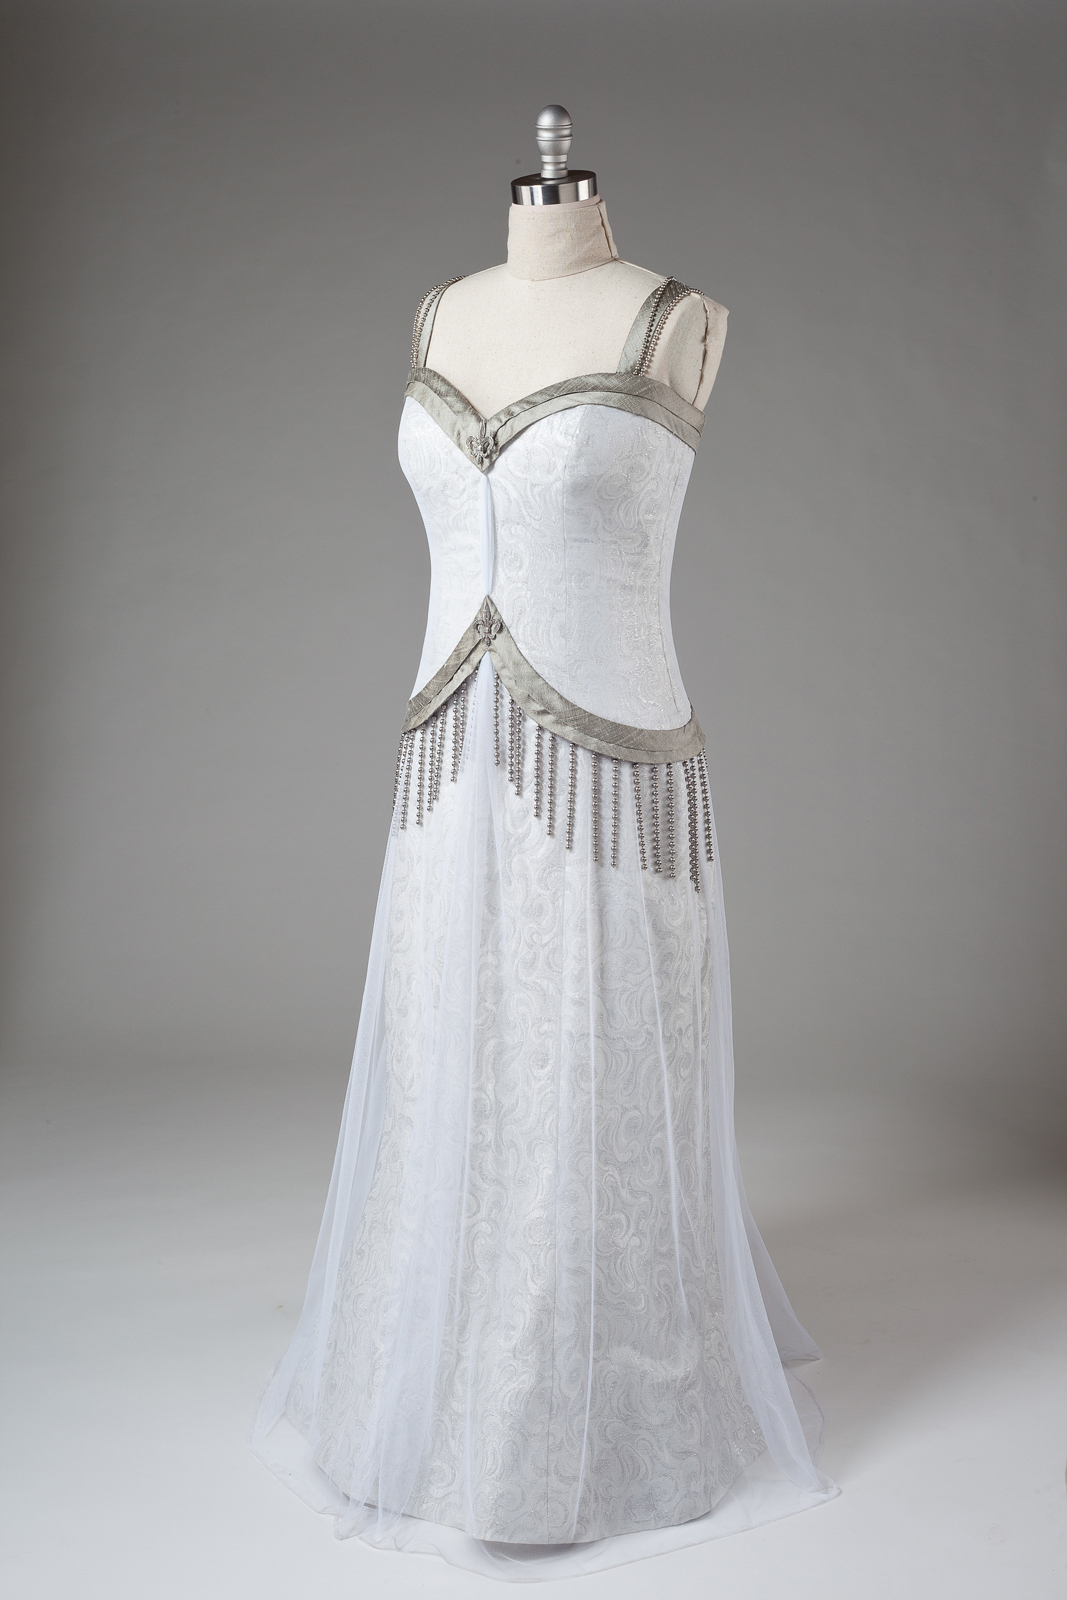 Brooks Ann Camper Bridal Couture